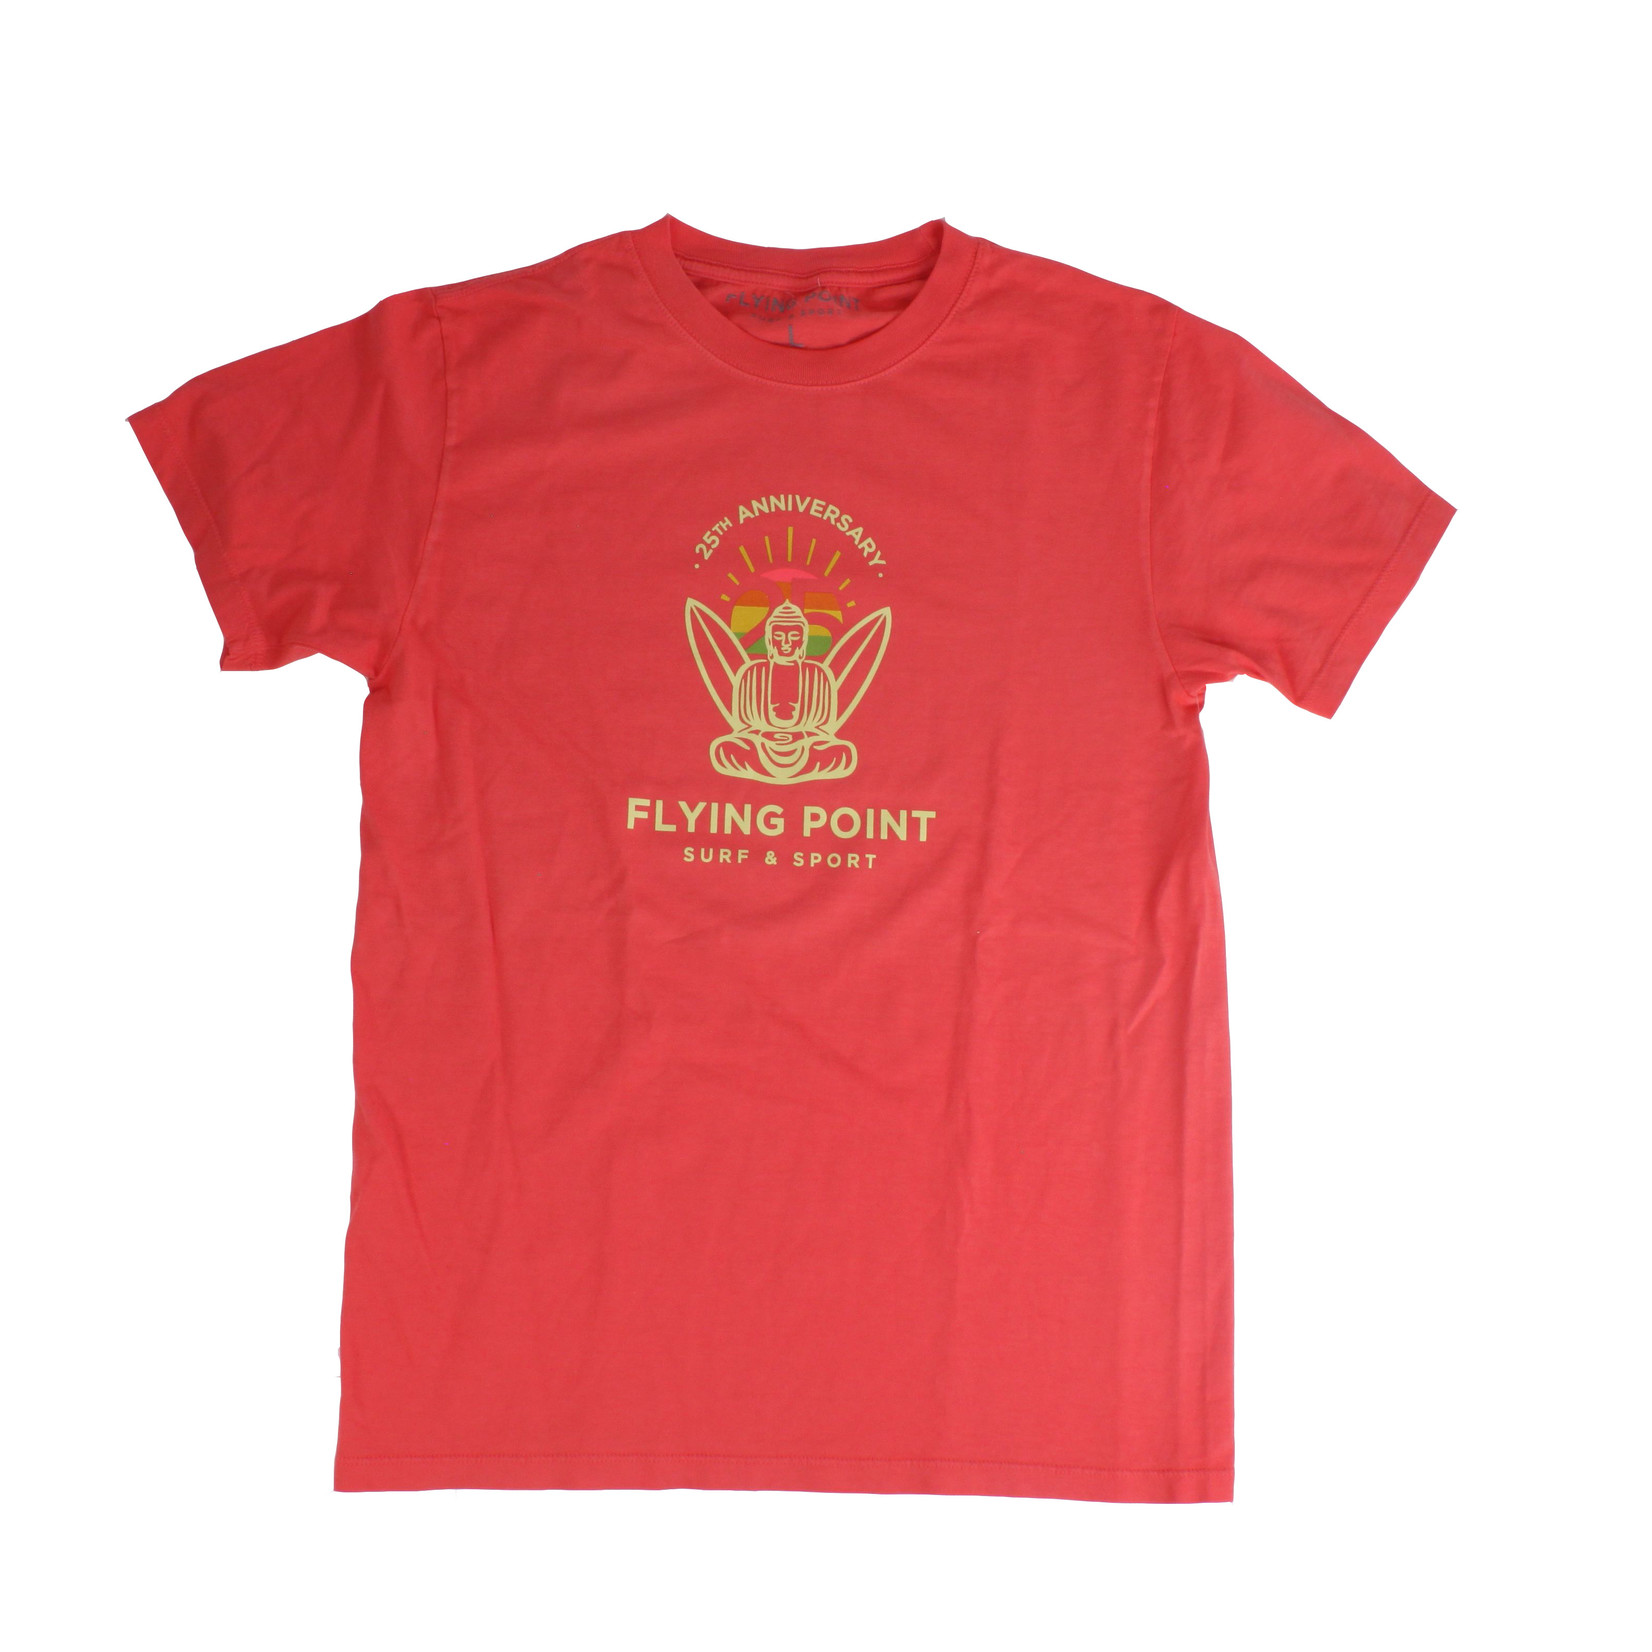 Flying Point 25th Anniversary Youth Tee